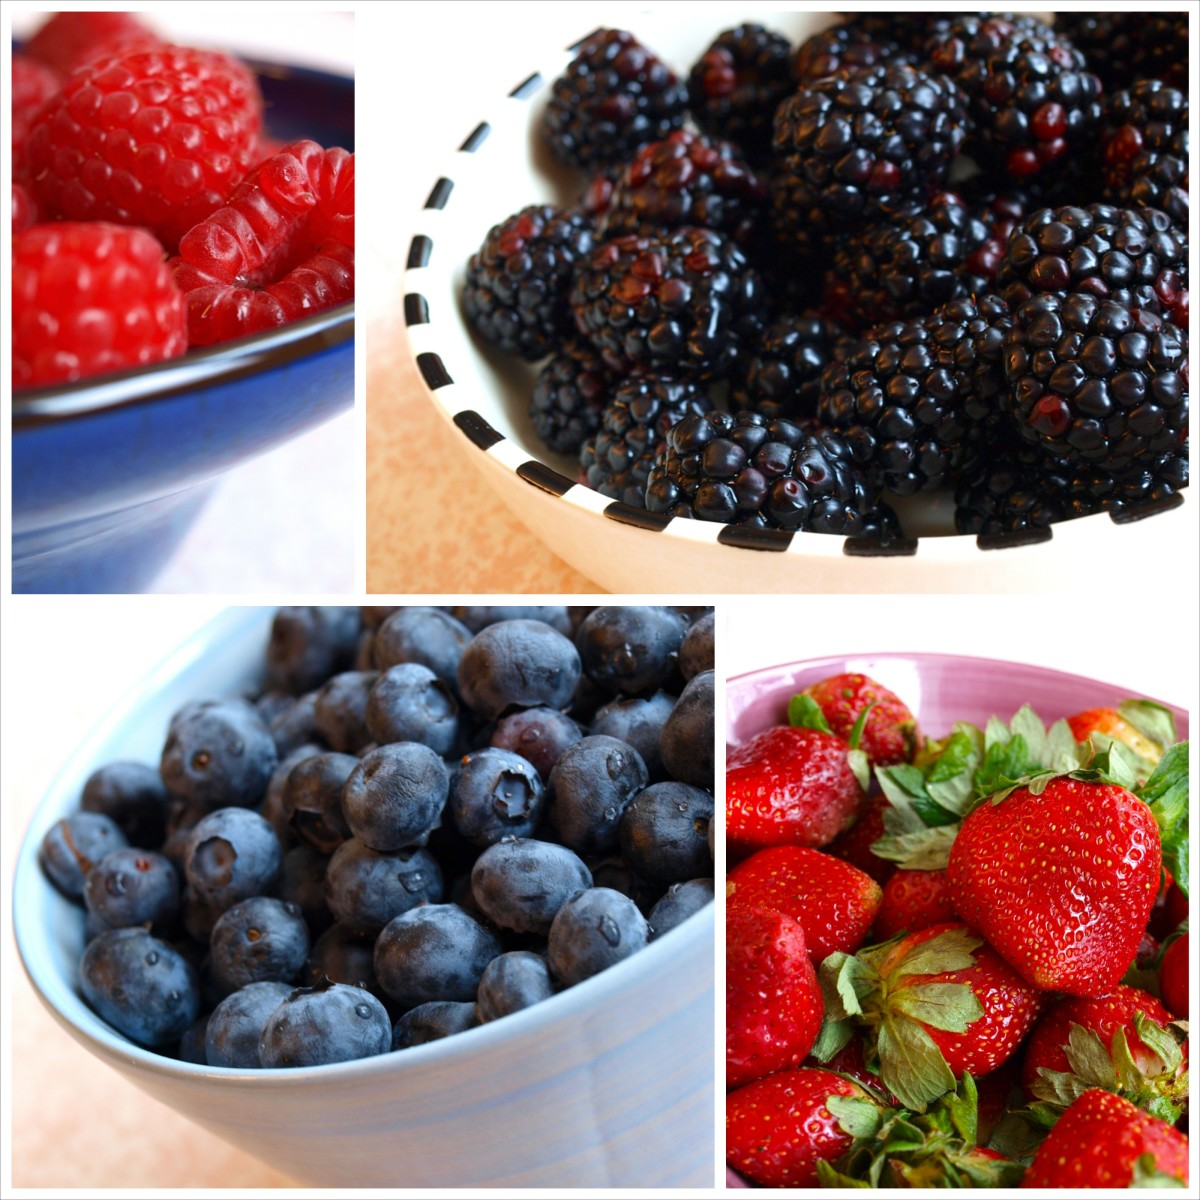 Raspberries, blackberries, blueberries and strawberries are all wonderful options.